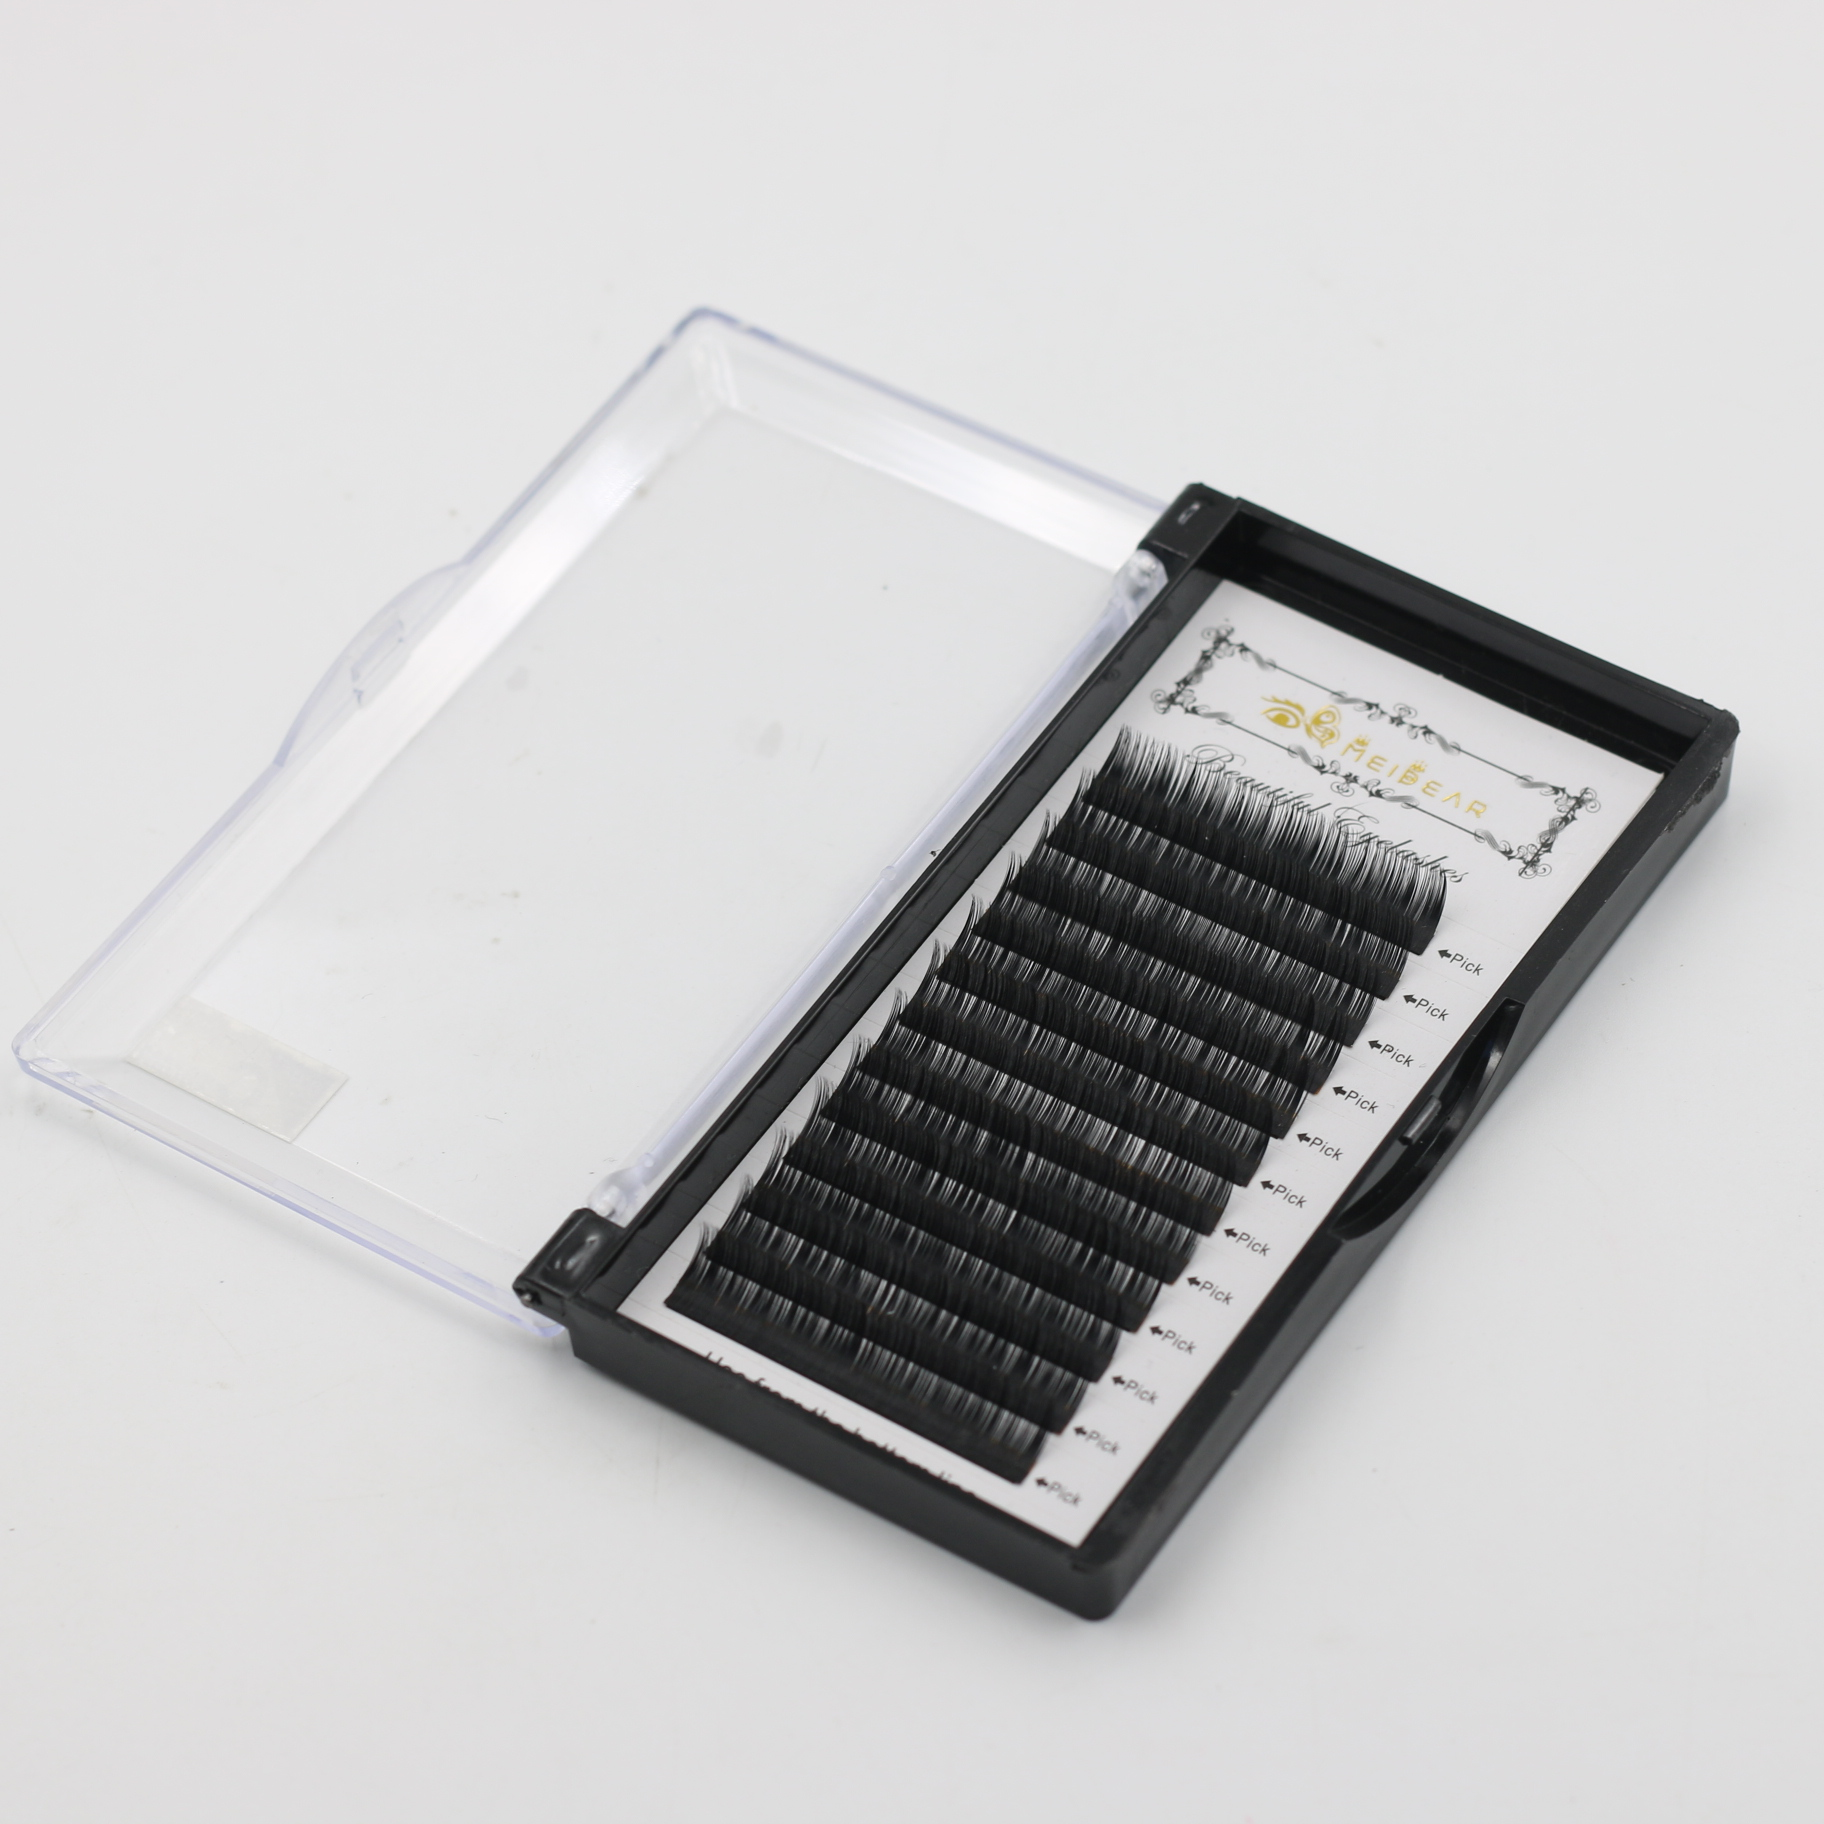 China soft eyelash extension supplies provide handmade individual eyelash extensions